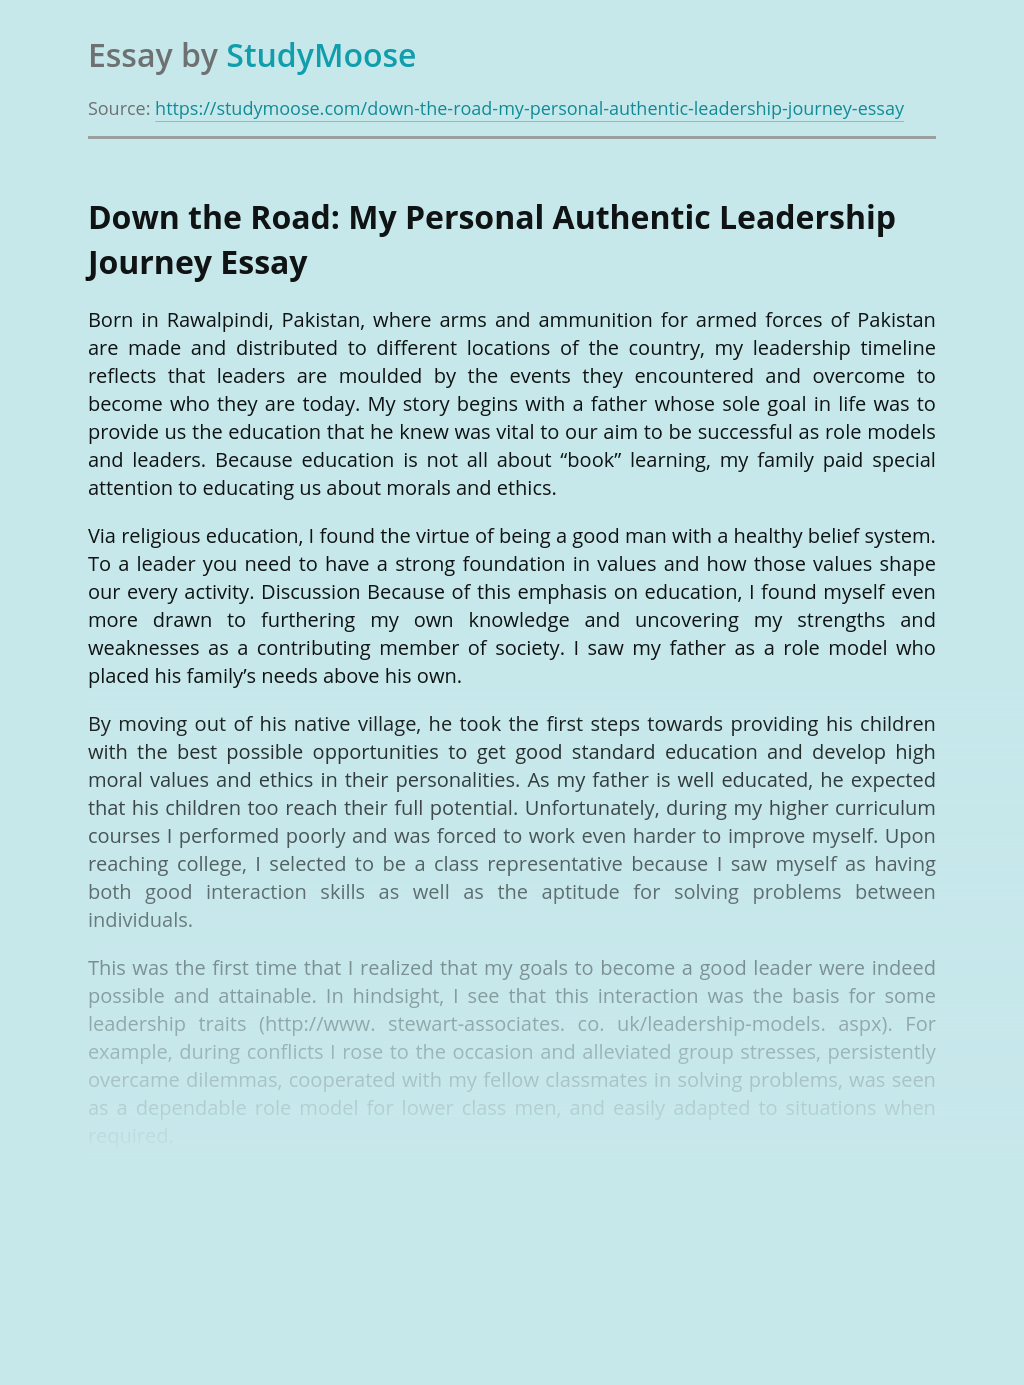 Down the Road: My Personal Authentic Leadership Journey